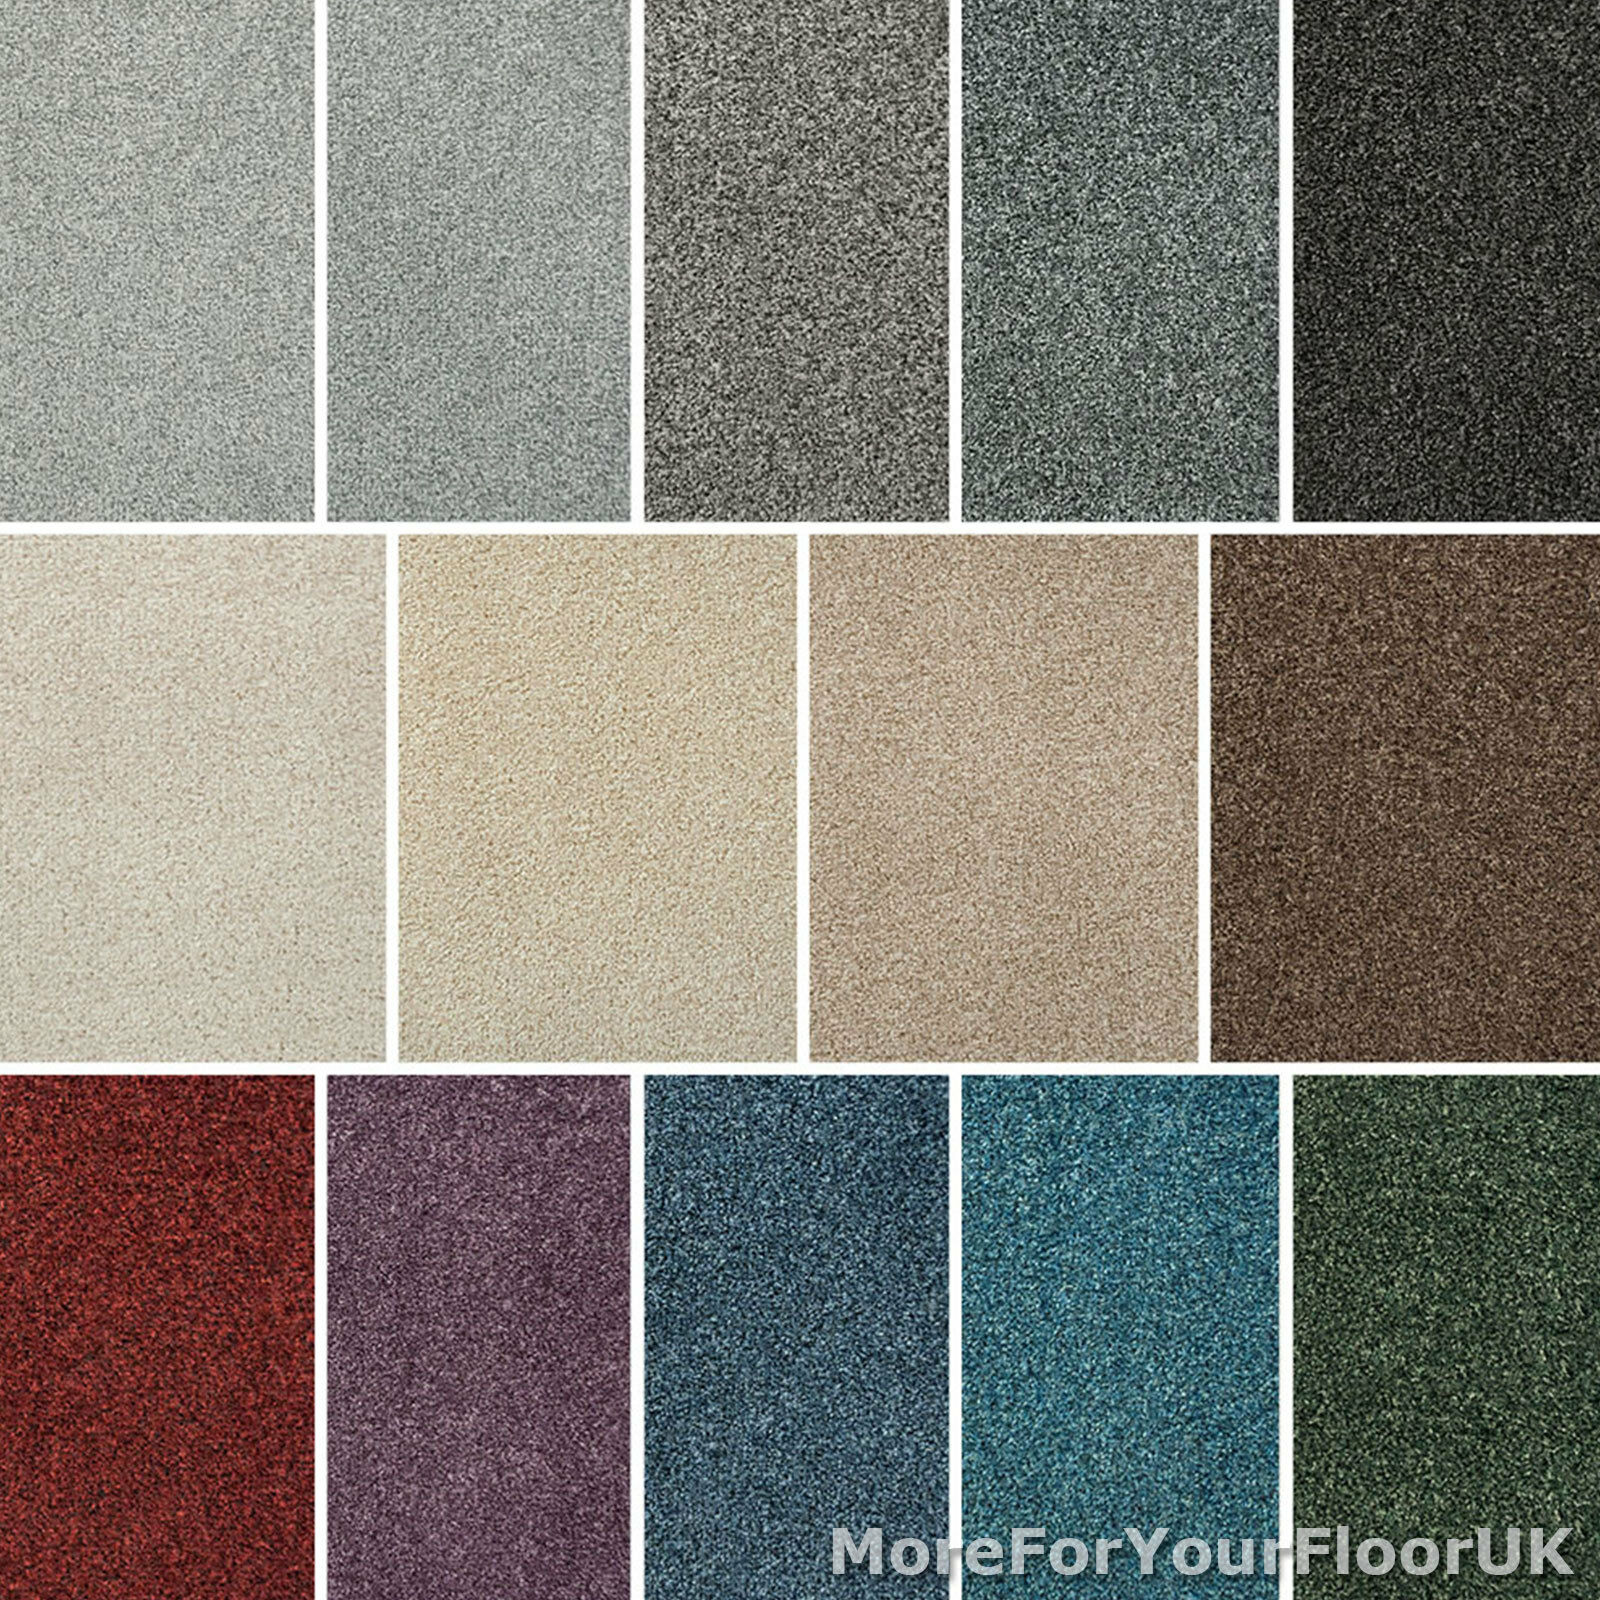 Liberty Heathers Carpet Stain Resistant Felt Backing 4m Wide Twist Pile CHEAPEST